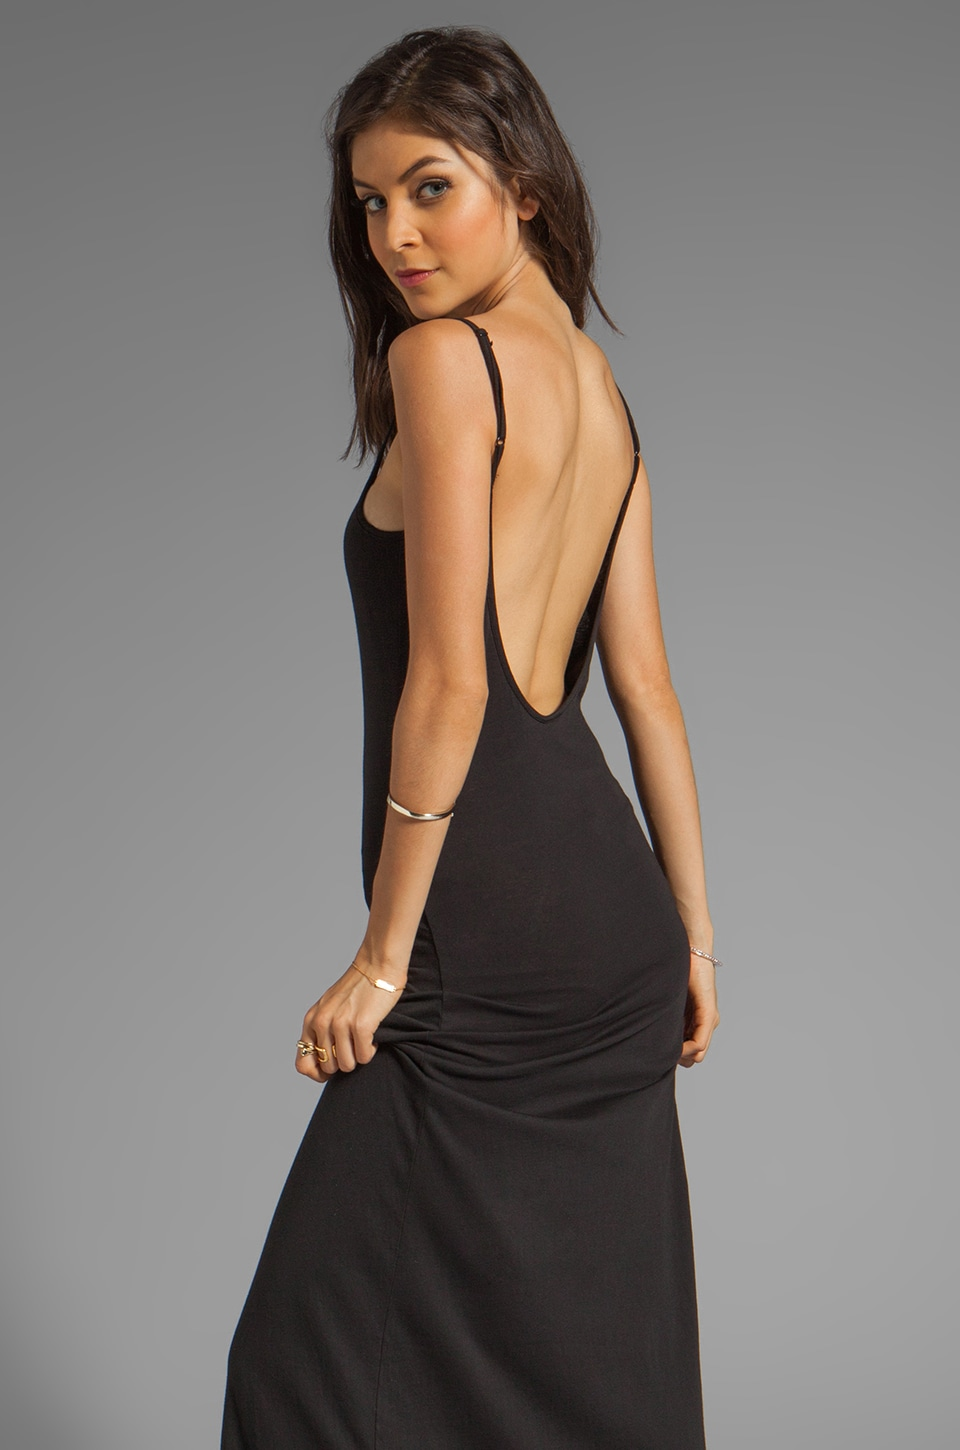 Bobi EXCLUSIVE Jersey Low Back Maxi Dress in Black | REVOLVE